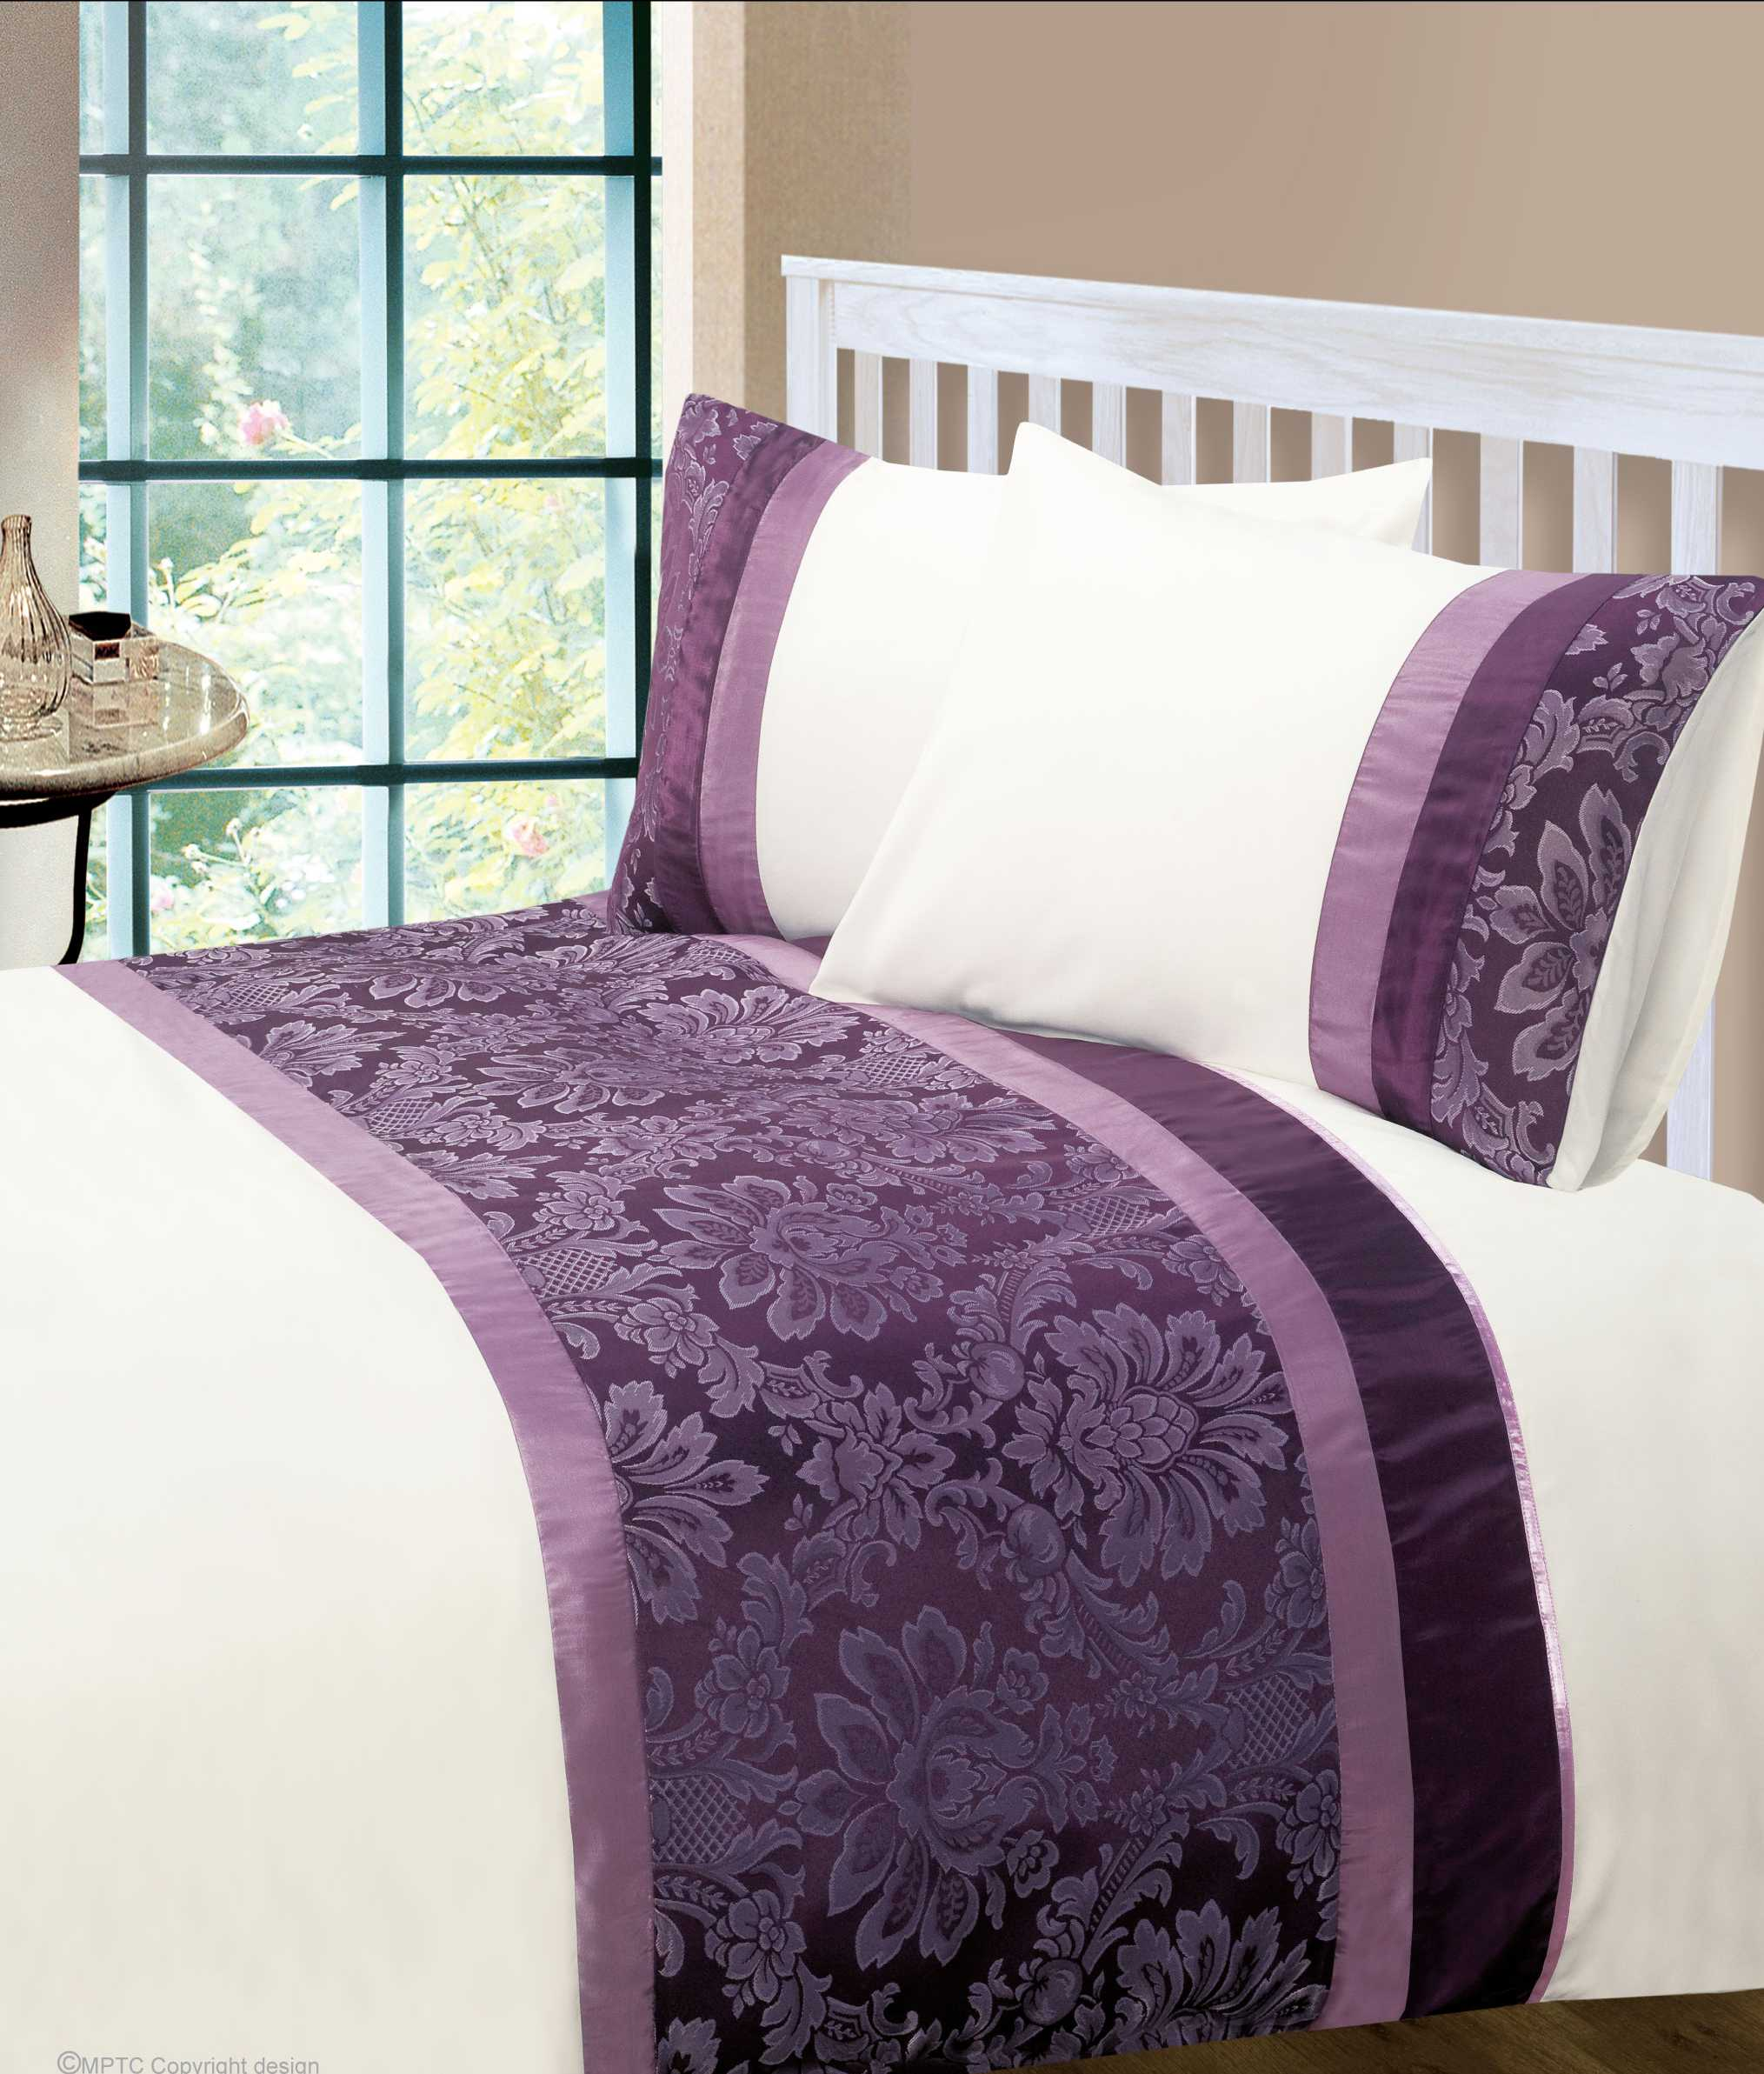 Cute damask bedding for bed decorating ideas with damask bedding set and damask crib bedding